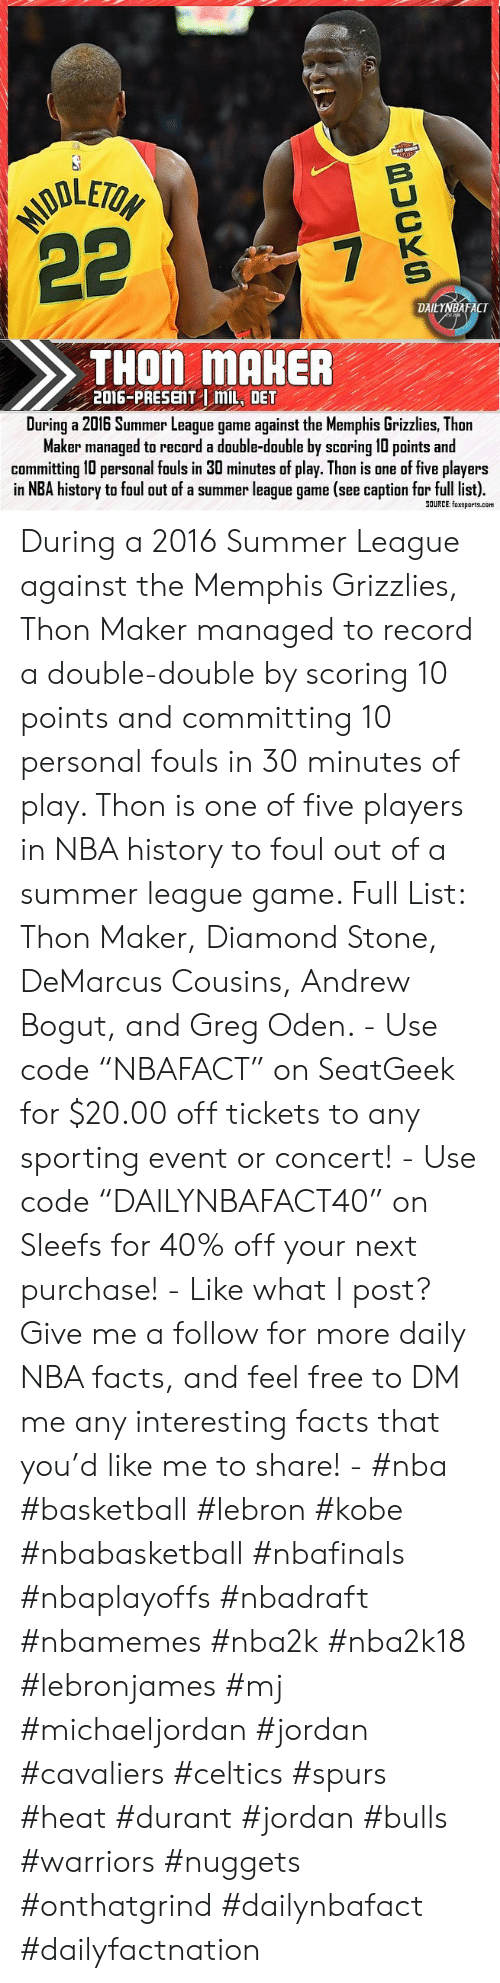 """Andrew Bogut: MODLETOH  22  B  7  K  S  DAILYNBAFACT  THON MAHER  2016-PRESENT mL, DET  During a 2016 Summer League game against the Memphis Grizzlies, Thon  Maker managed to record a double-double by scoring 10 points and  committing 10 personal fouls in 30 minutes of play. Thon is one of five players  in NBA history to foul out of a summer league game (see caption for full list).  SOURCE: foxsports.com During a 2016 Summer League against the Memphis Grizzlies, Thon Maker managed to record a double-double by scoring 10 points and committing 10 personal fouls in 30 minutes of play. Thon is one of five players in NBA history to foul out of a summer league game. Full List: Thon Maker, Diamond Stone, DeMarcus Cousins, Andrew Bogut, and Greg Oden. - Use code """"NBAFACT"""" on SeatGeek for $20.00 off tickets to any sporting event or concert! - Use code """"DAILYNBAFACT40"""" on Sleefs for 40% off your next purchase! - Like what I post? Give me a follow for more daily NBA facts, and feel free to DM me any interesting facts that you'd like me to share! - #nba #basketball #lebron #kobe #nbabasketball #nbafinals #nbaplayoffs #nbadraft #nbamemes #nba2k #nba2k18 #lebronjames #mj #michaeljordan #jordan #cavaliers #celtics #spurs #heat #durant #jordan #bulls #warriors #nuggets #onthatgrind #dailynbafact #dailyfactnation"""